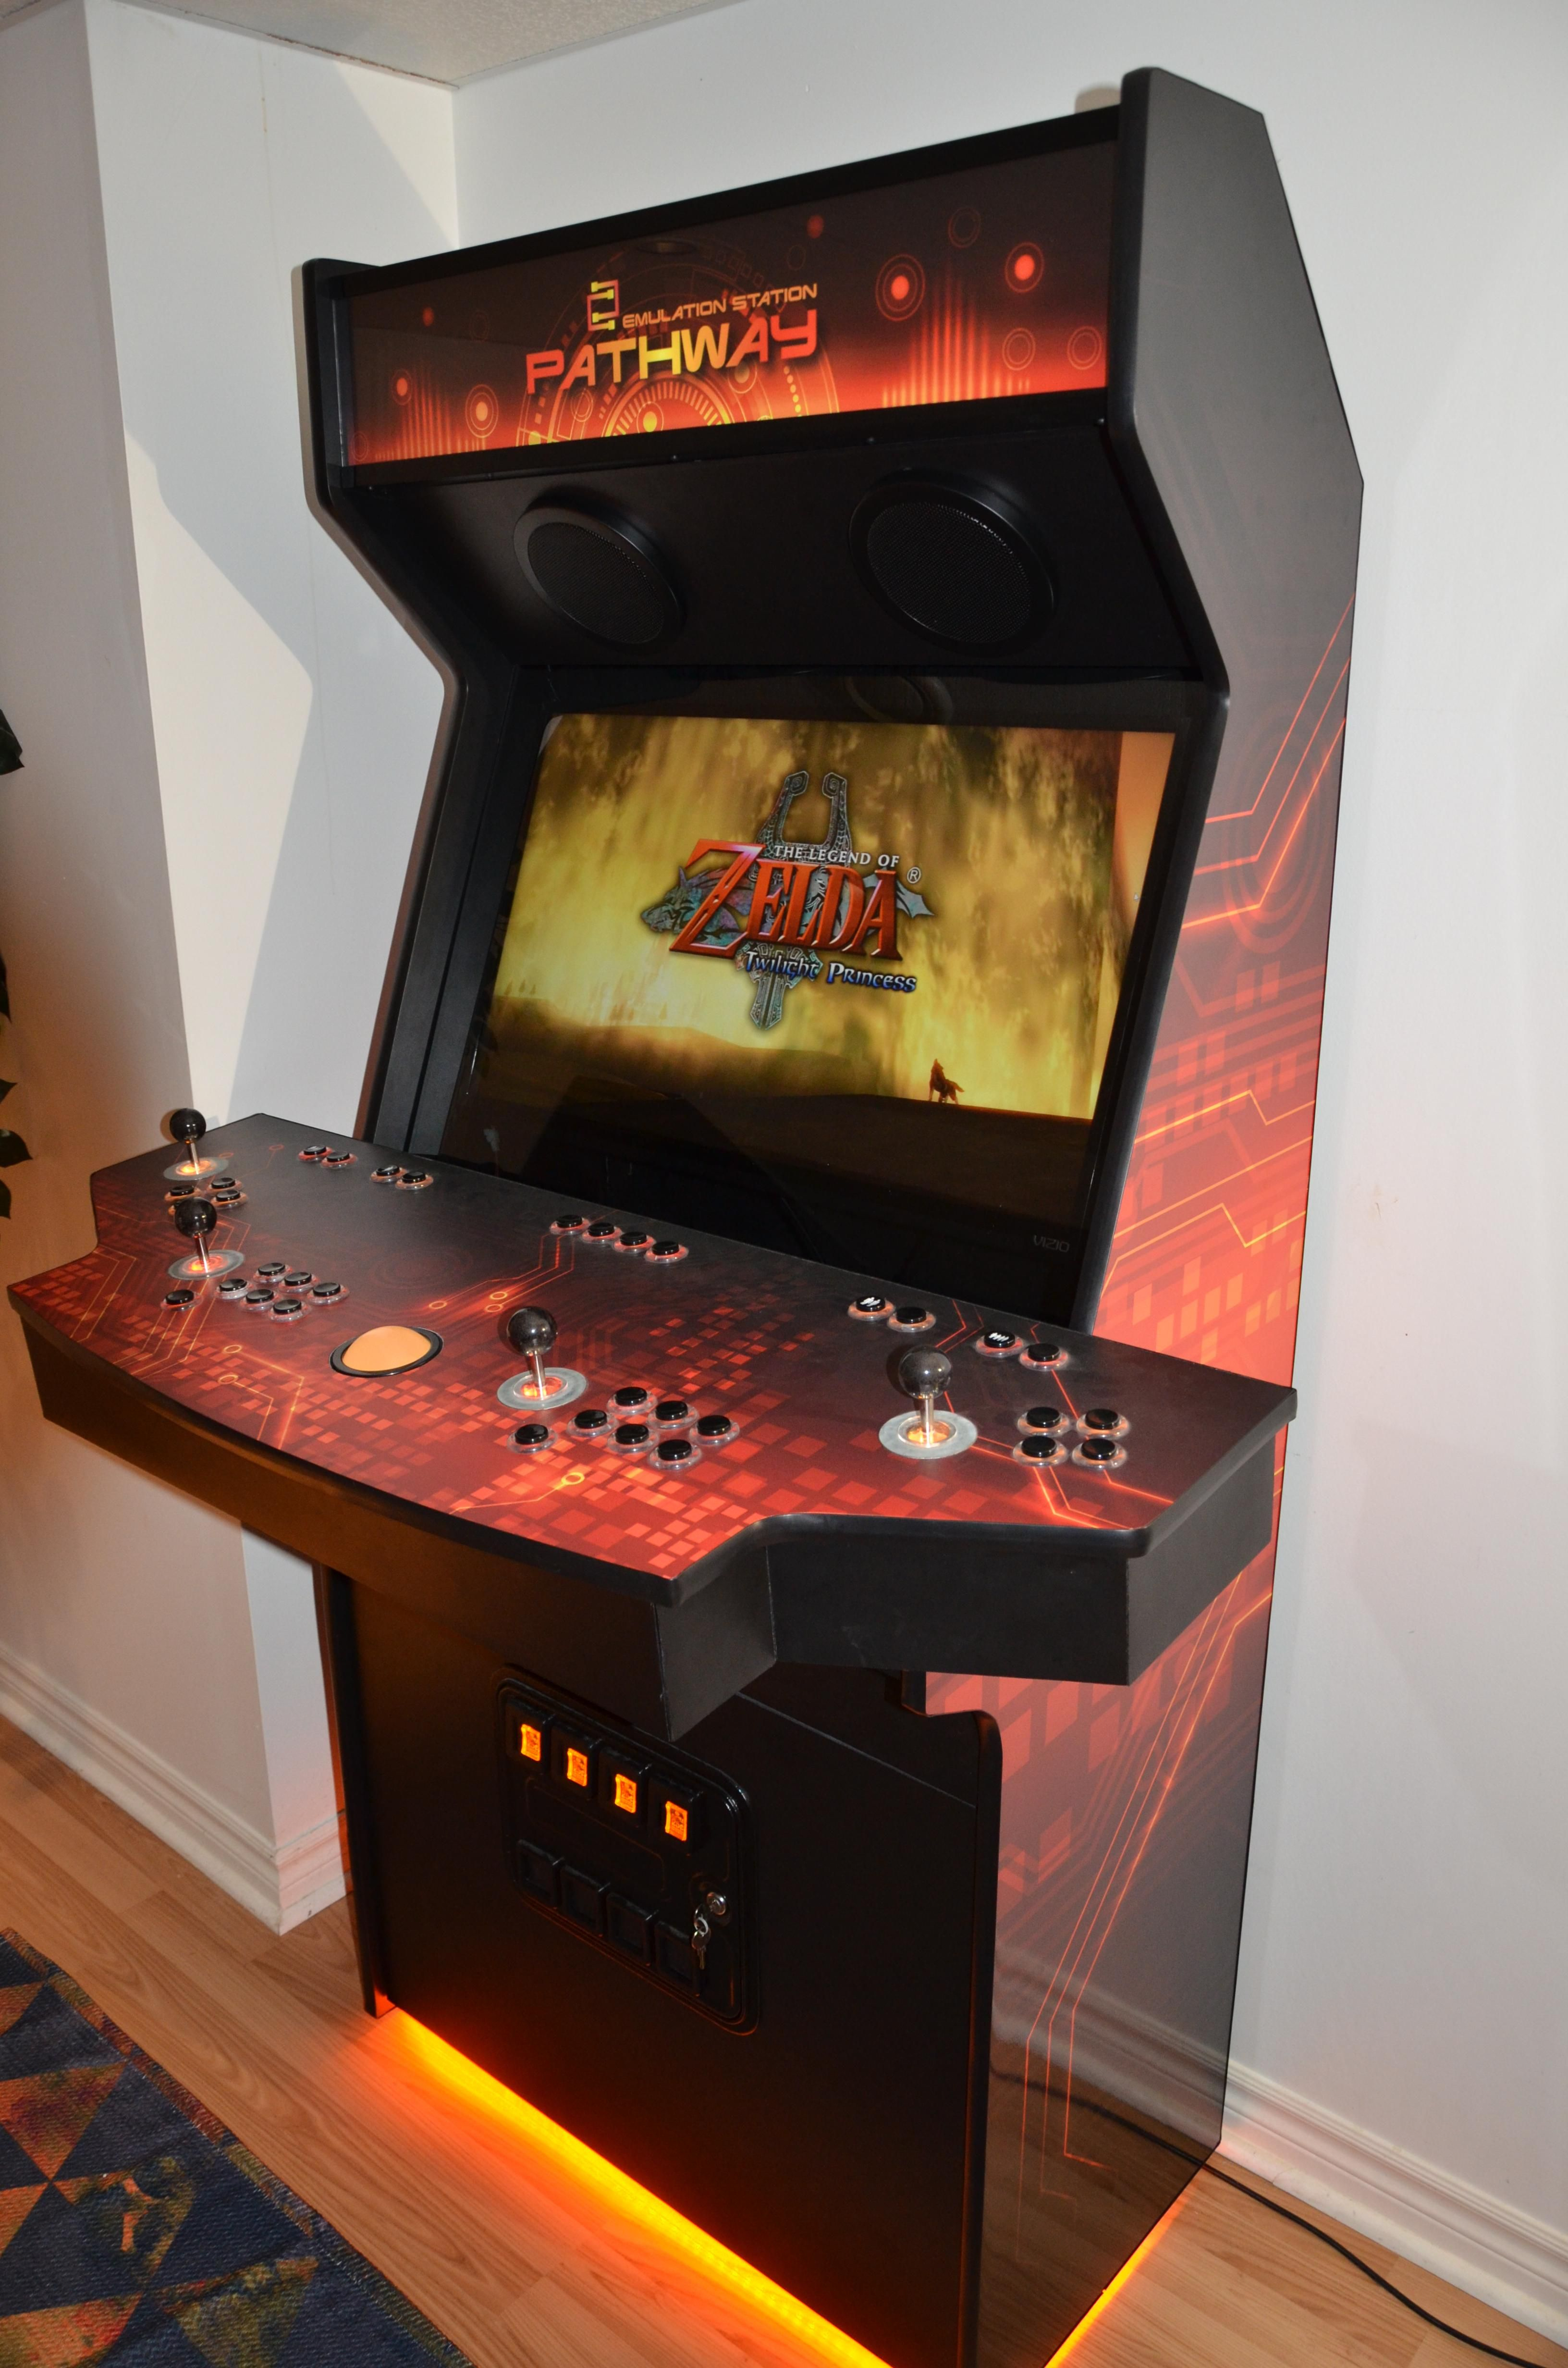 Pathway Cabinet Build - FINISHED | MAME Arcades | Video ...